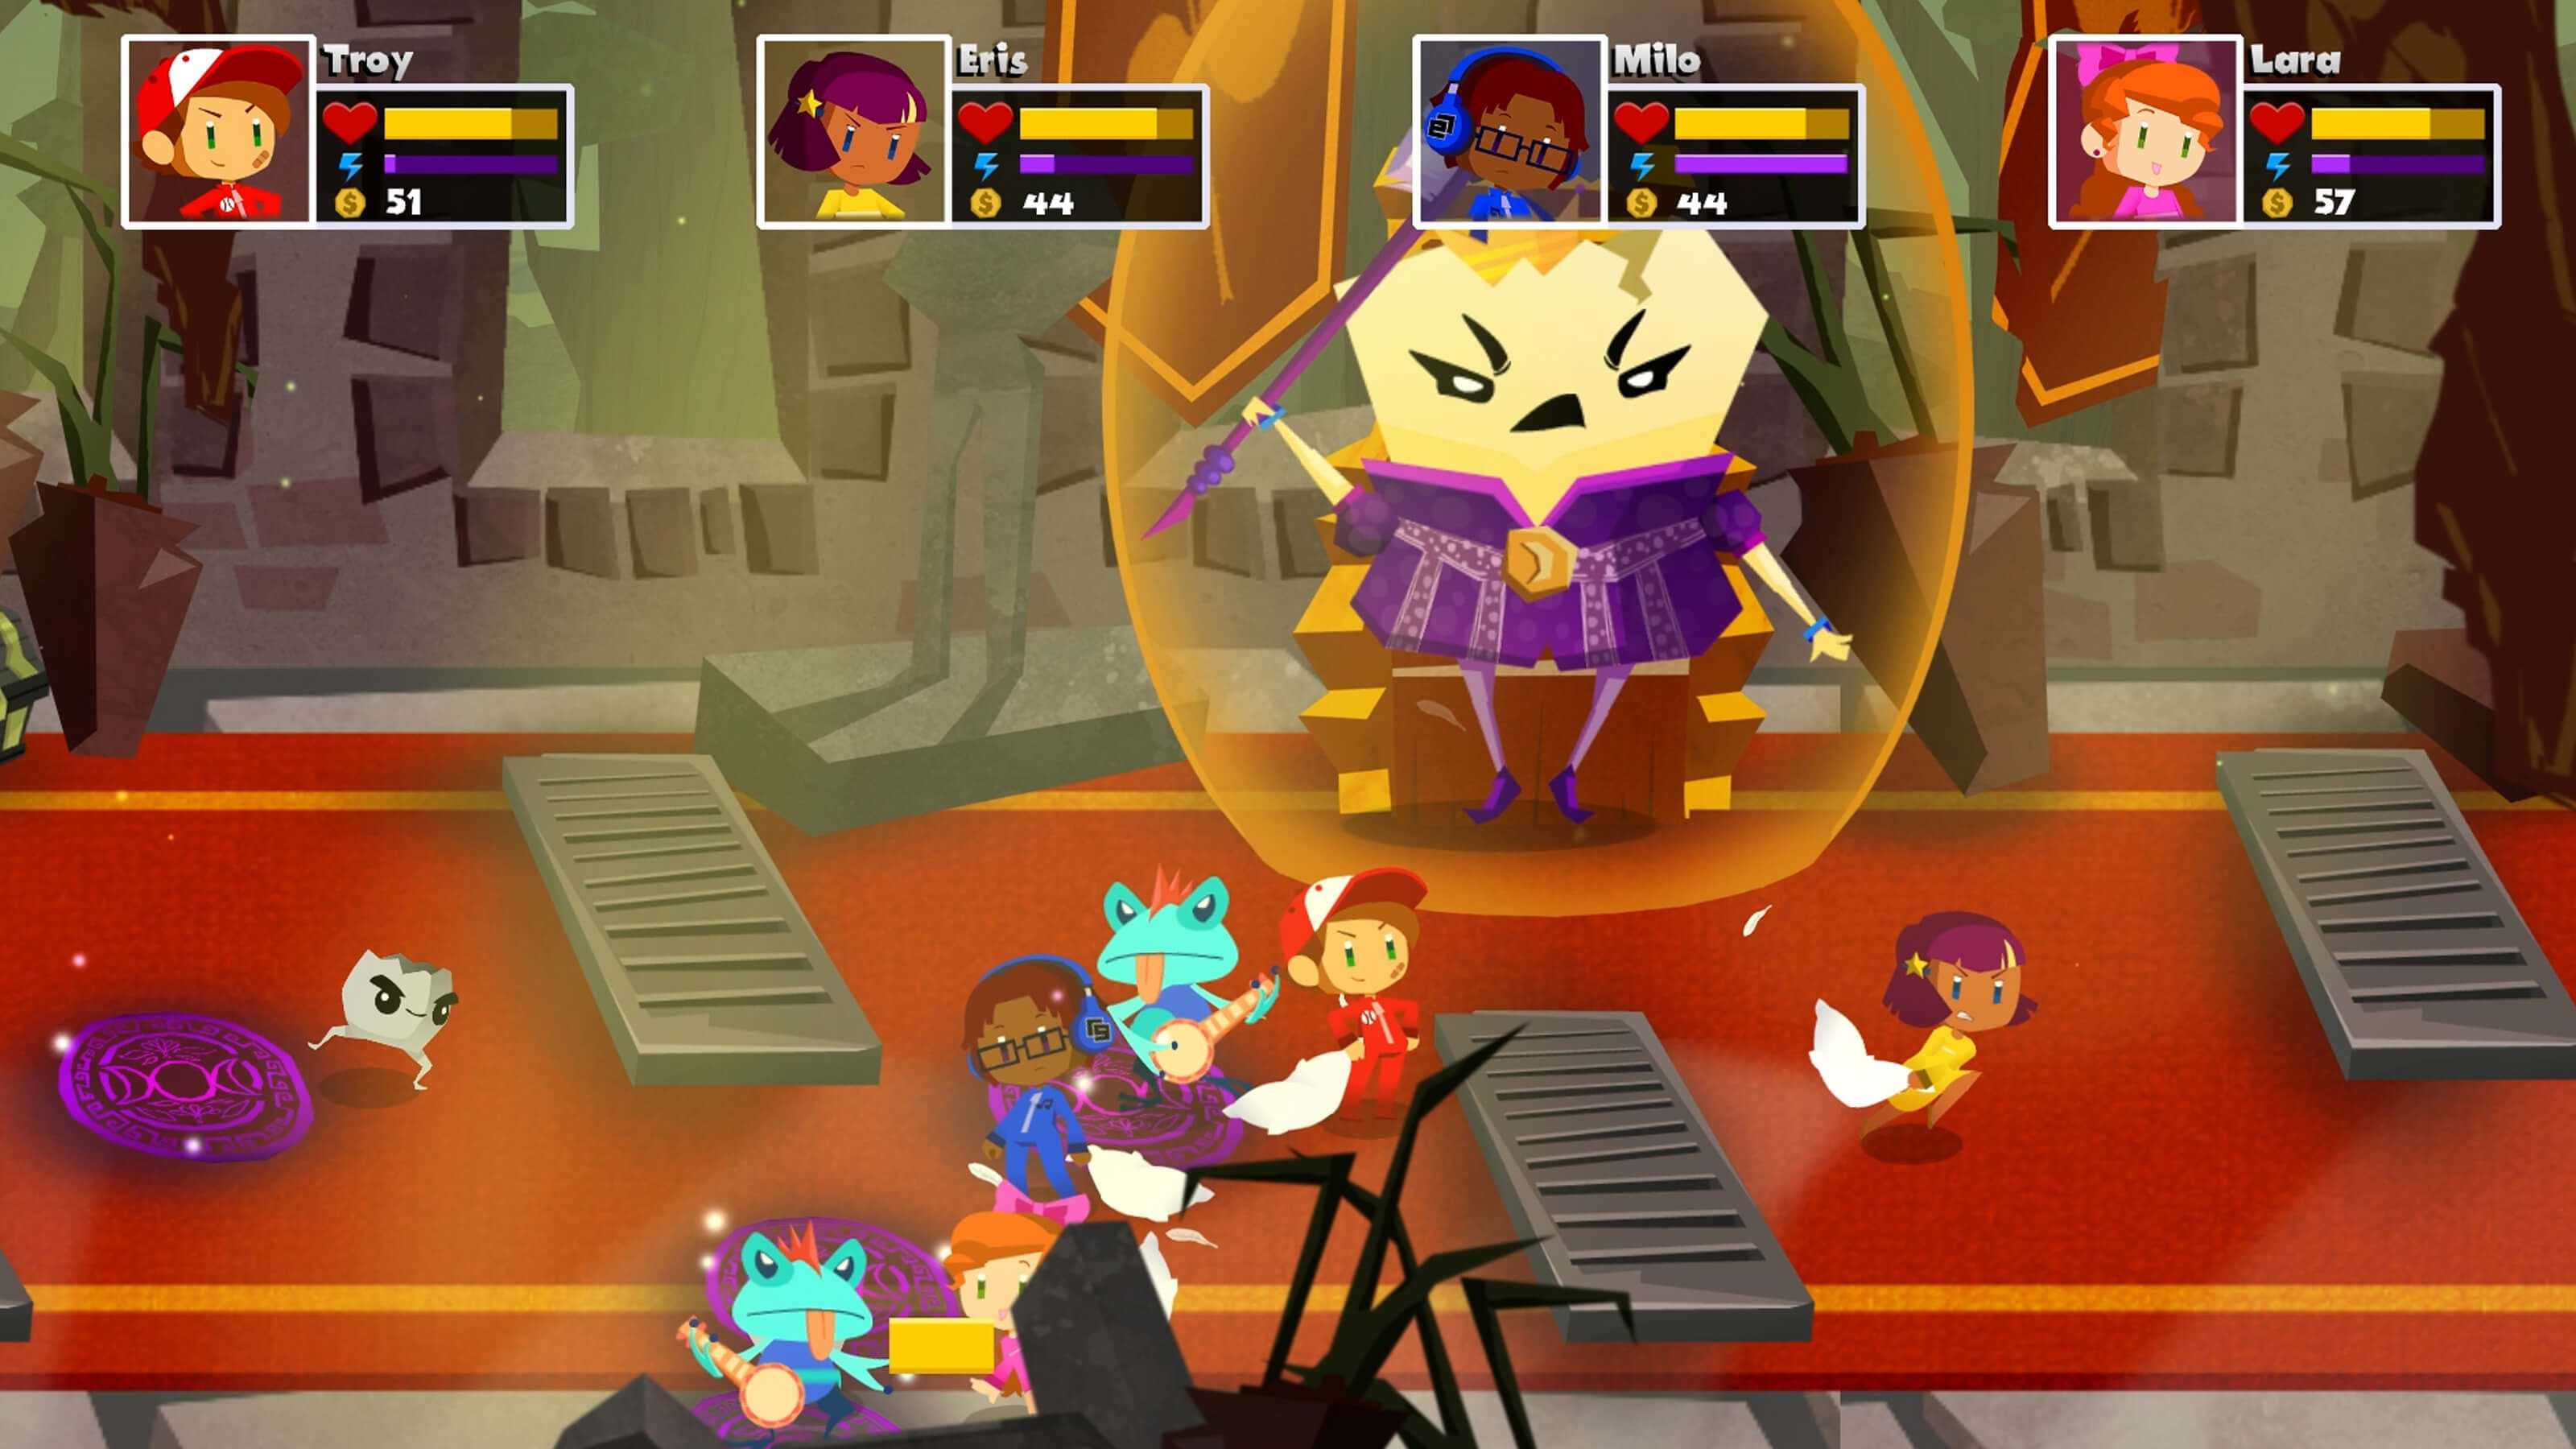 The four main characters battle with banjo wielding frogs and an evil egg shell.